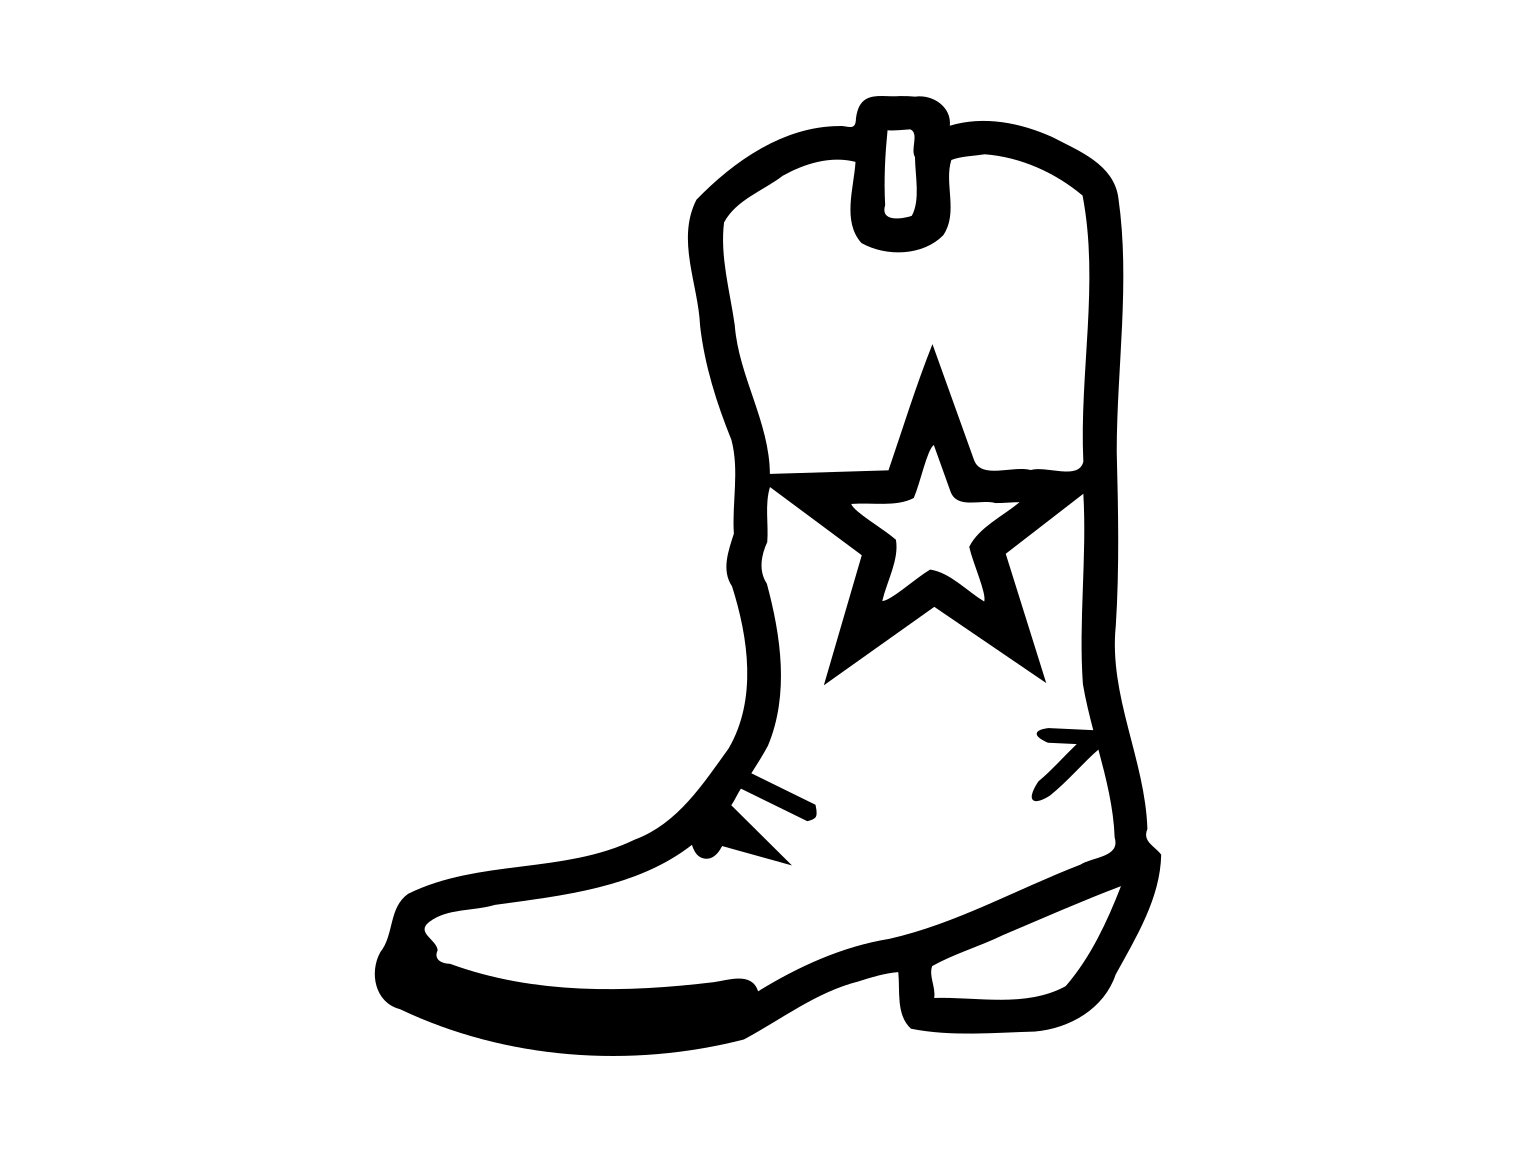 Cowboy Boot Svg Western Boot Svg Cowboy Boot Dxf Western Boot Dxf Cowboy  Svg Files Cowboy Boot Clipart Country Svg Dxf Southwestern Svg.